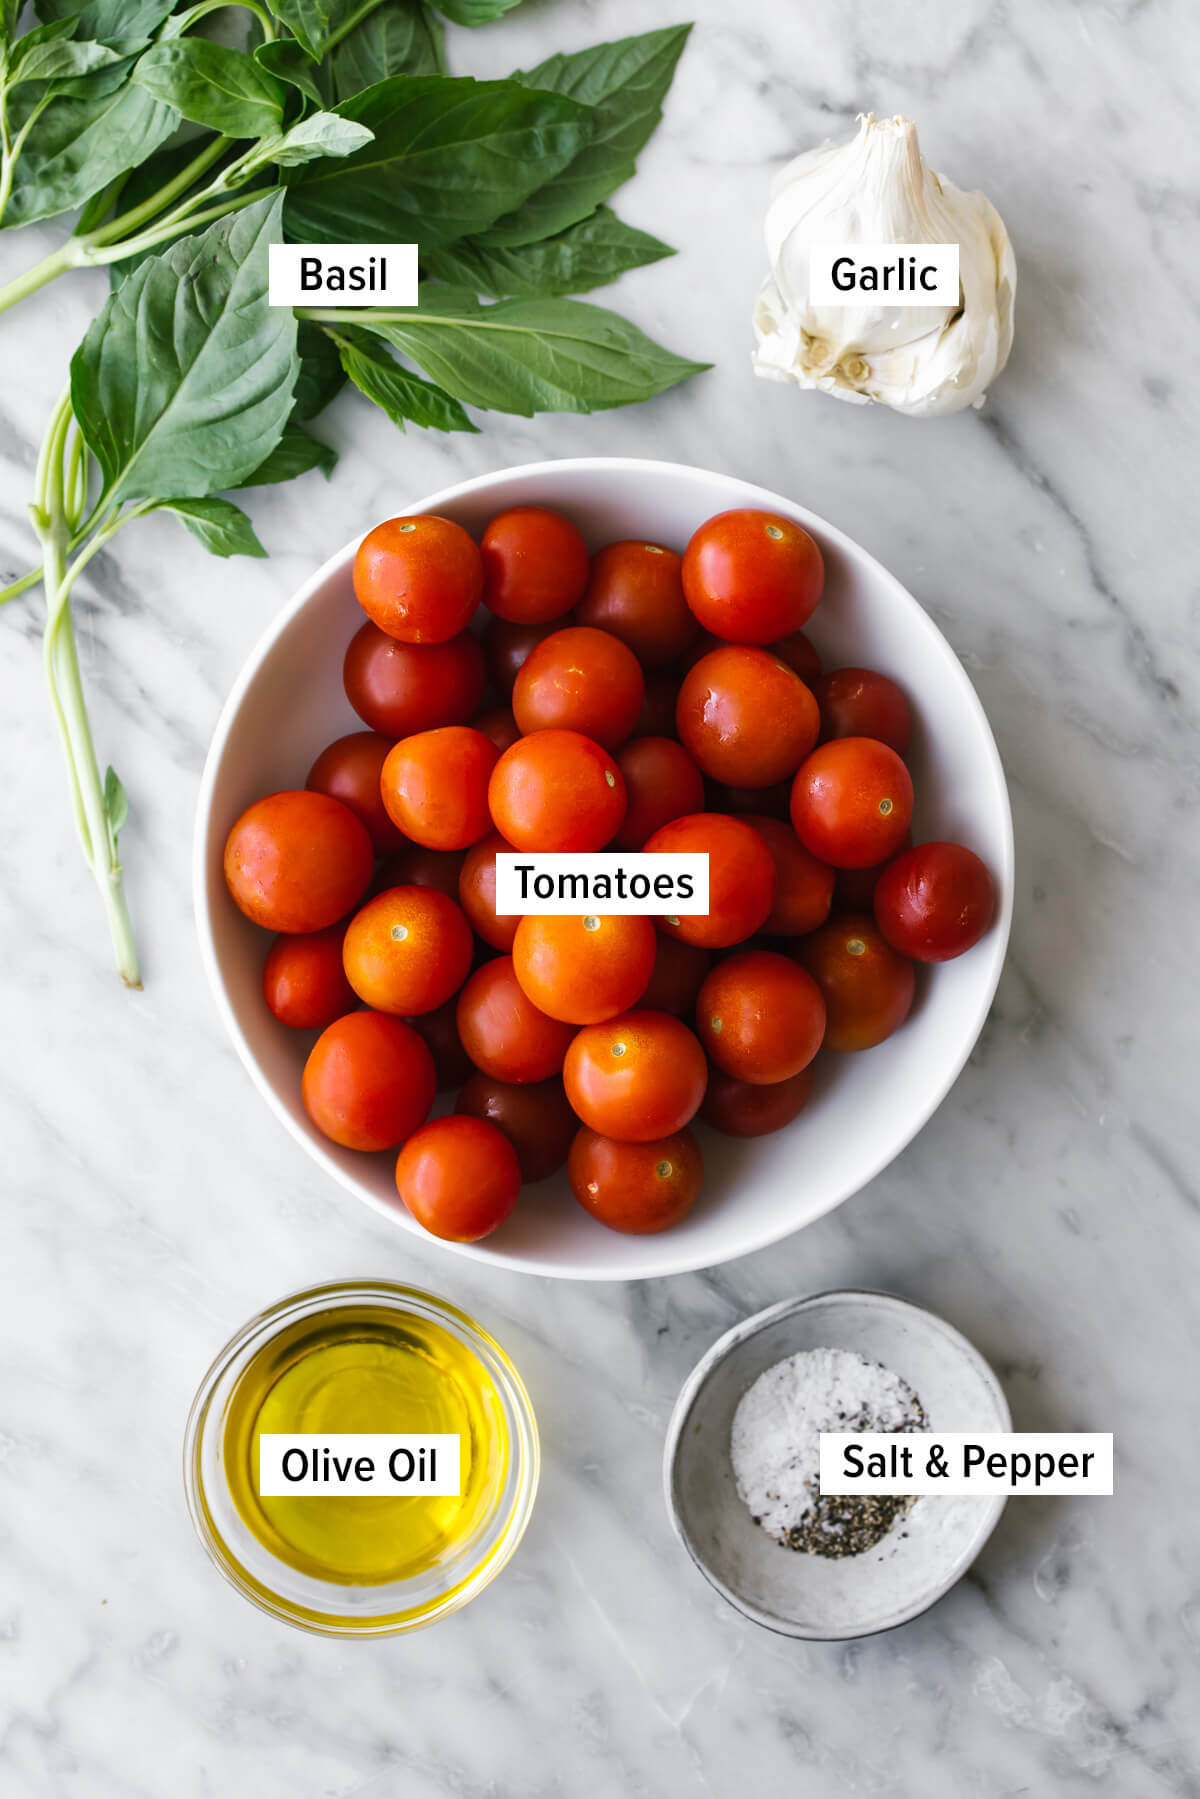 Ingredients for blistered tomatoes on a table.